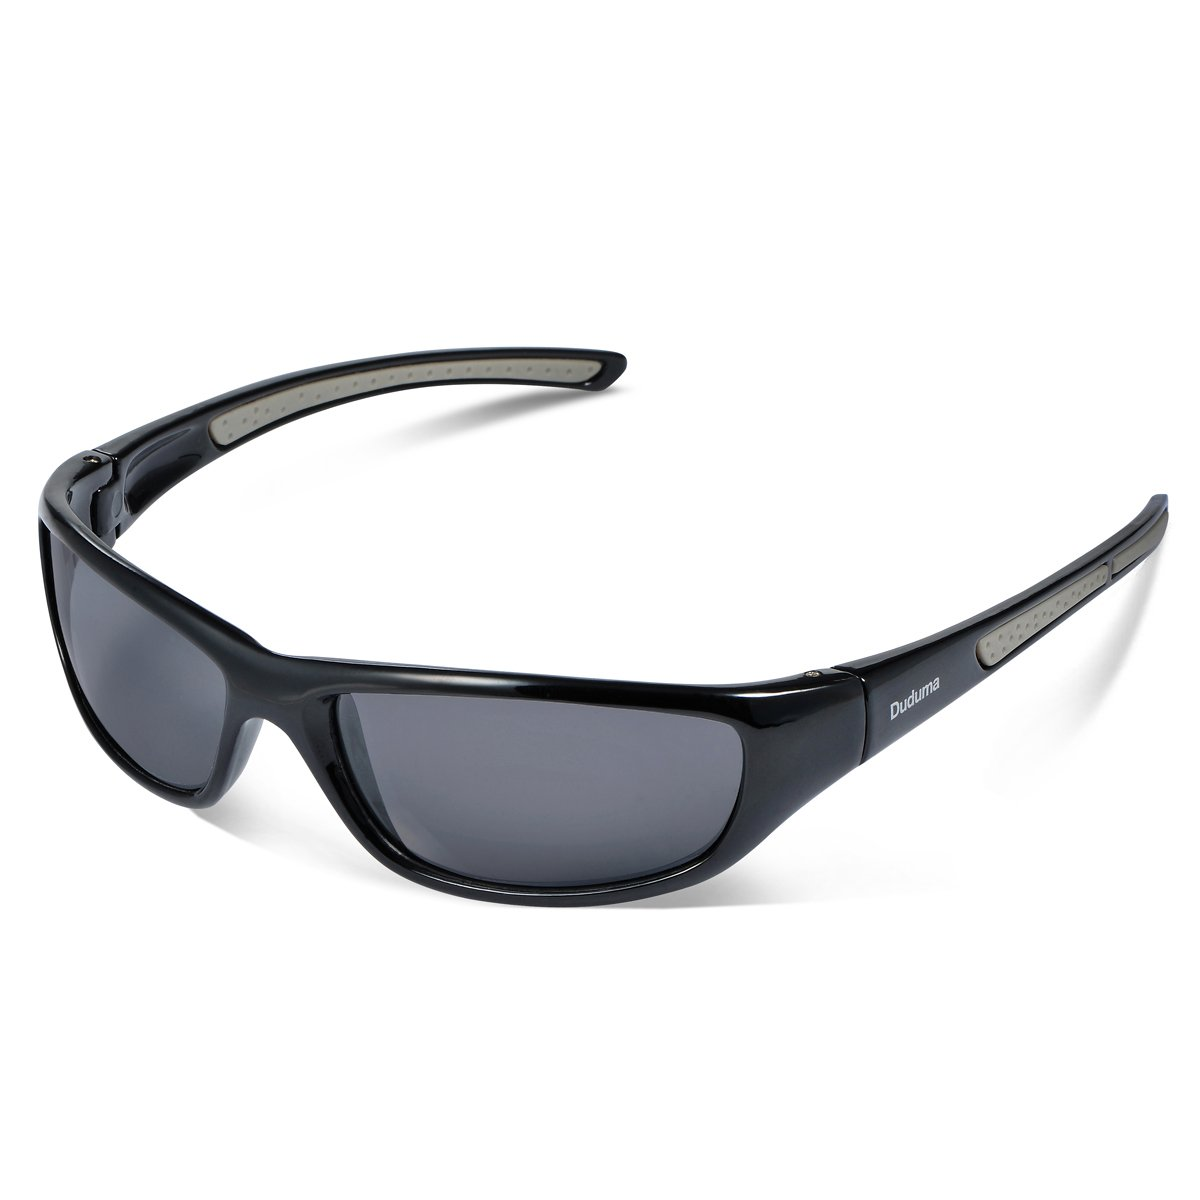 Duduma Polarized Sports Sunglasses for Men Women Baseball Running Cycling Fishing Driving Golf Softball Hiking Sun Glasses Tr8116 by Duduma